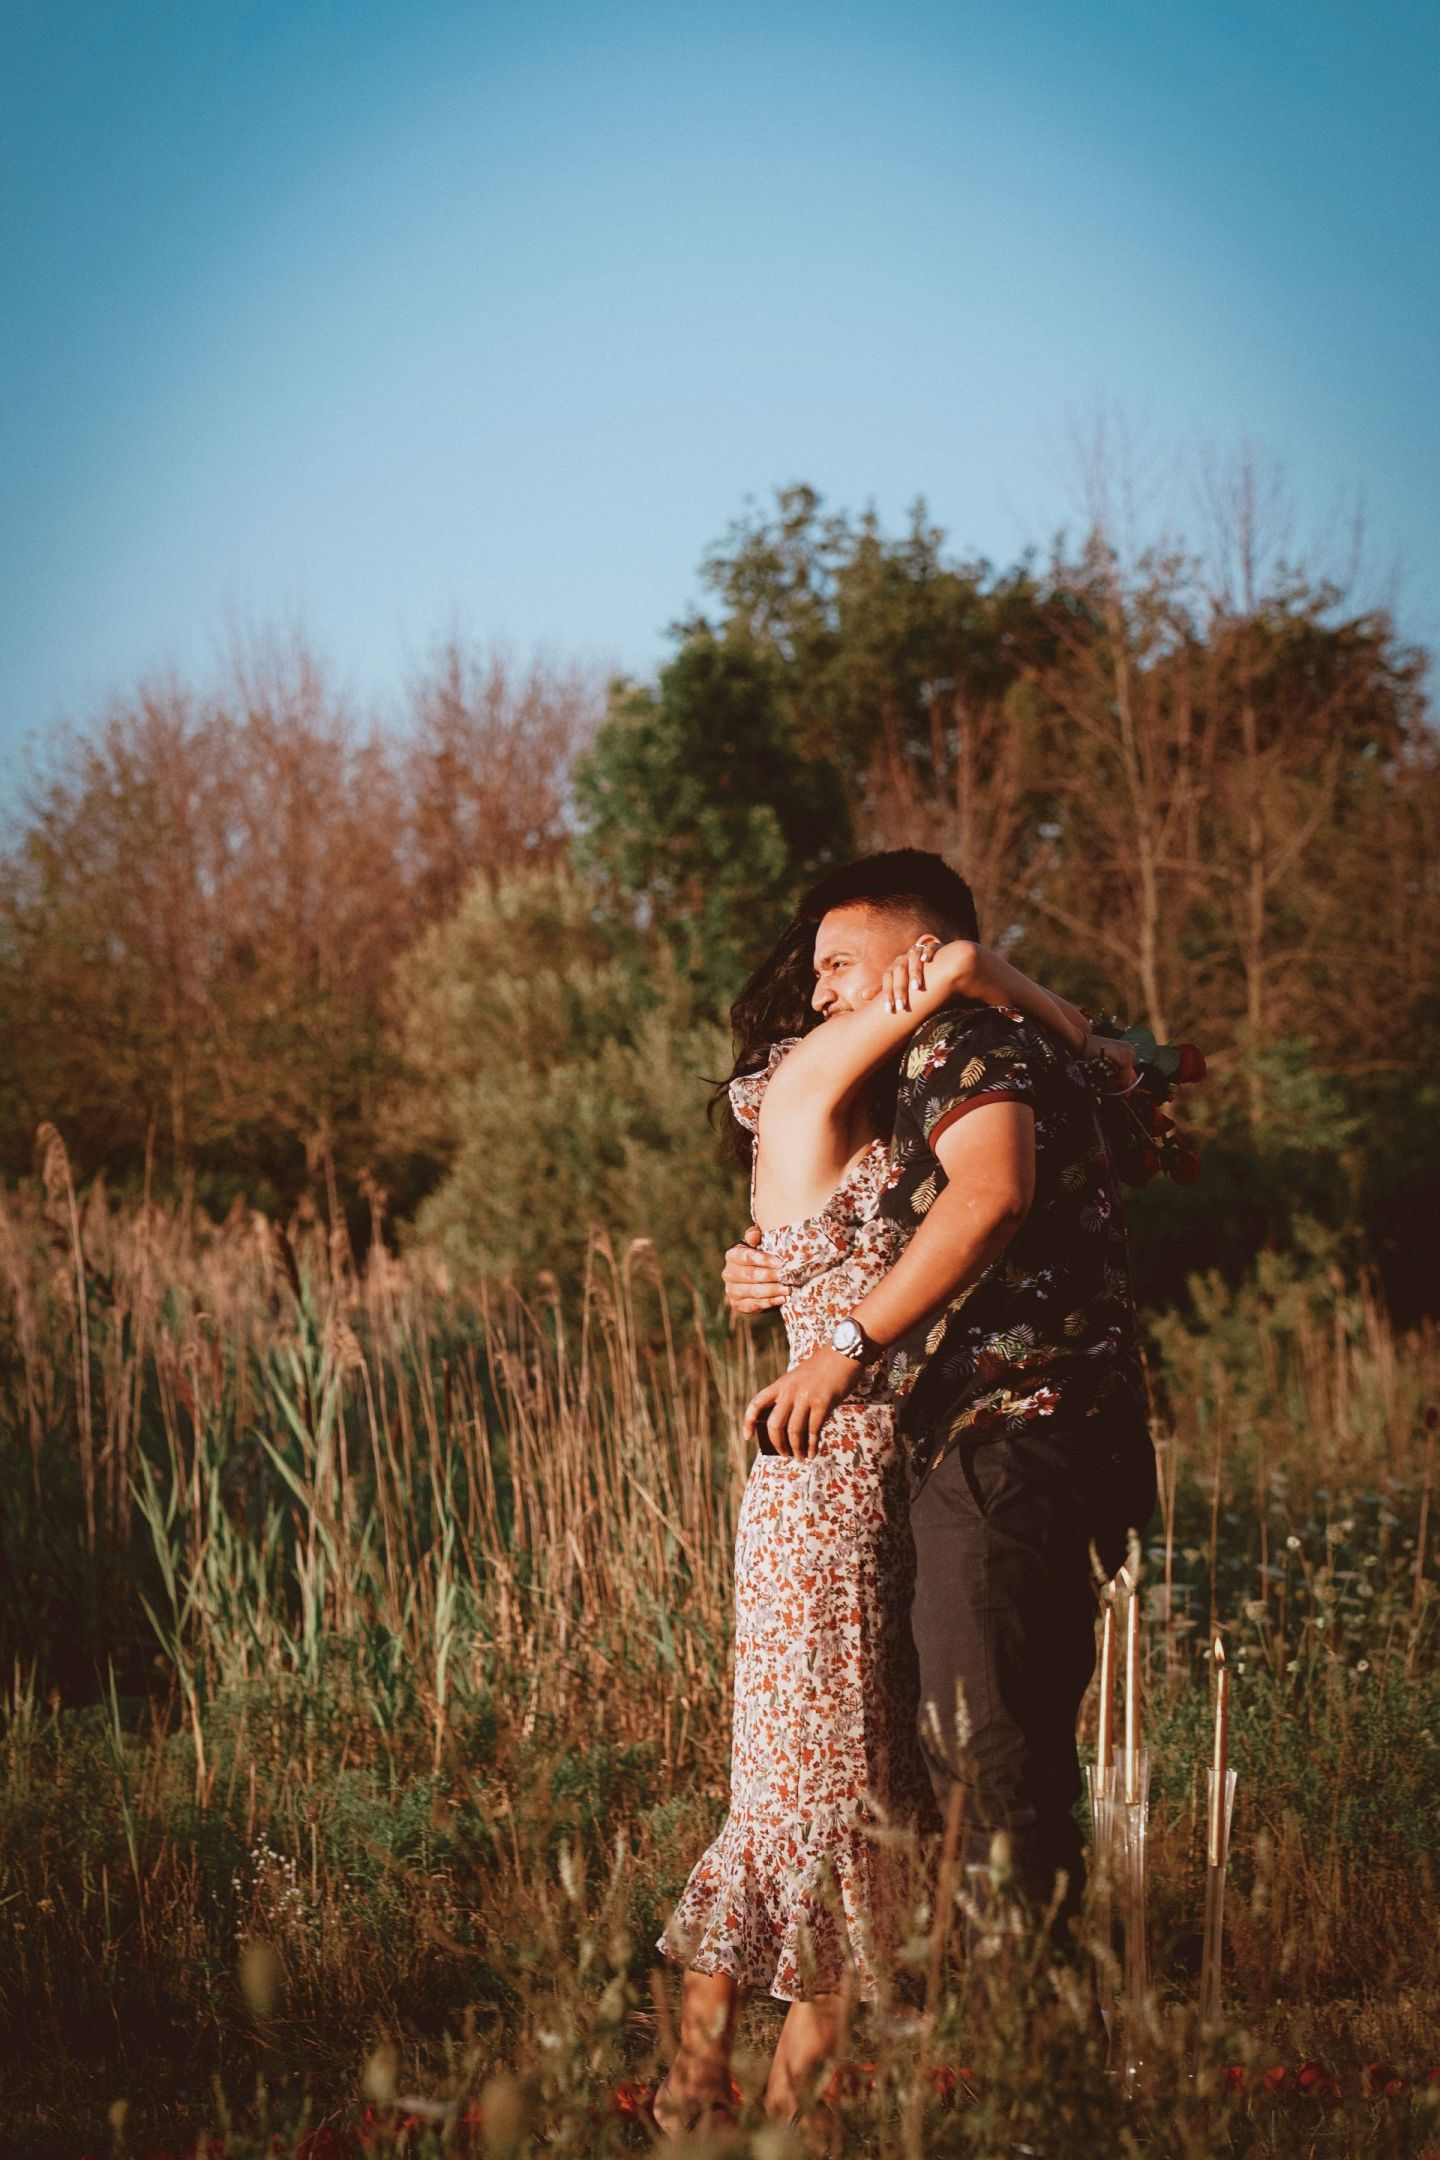 Adam and Ayla's engagement at the farm during covid